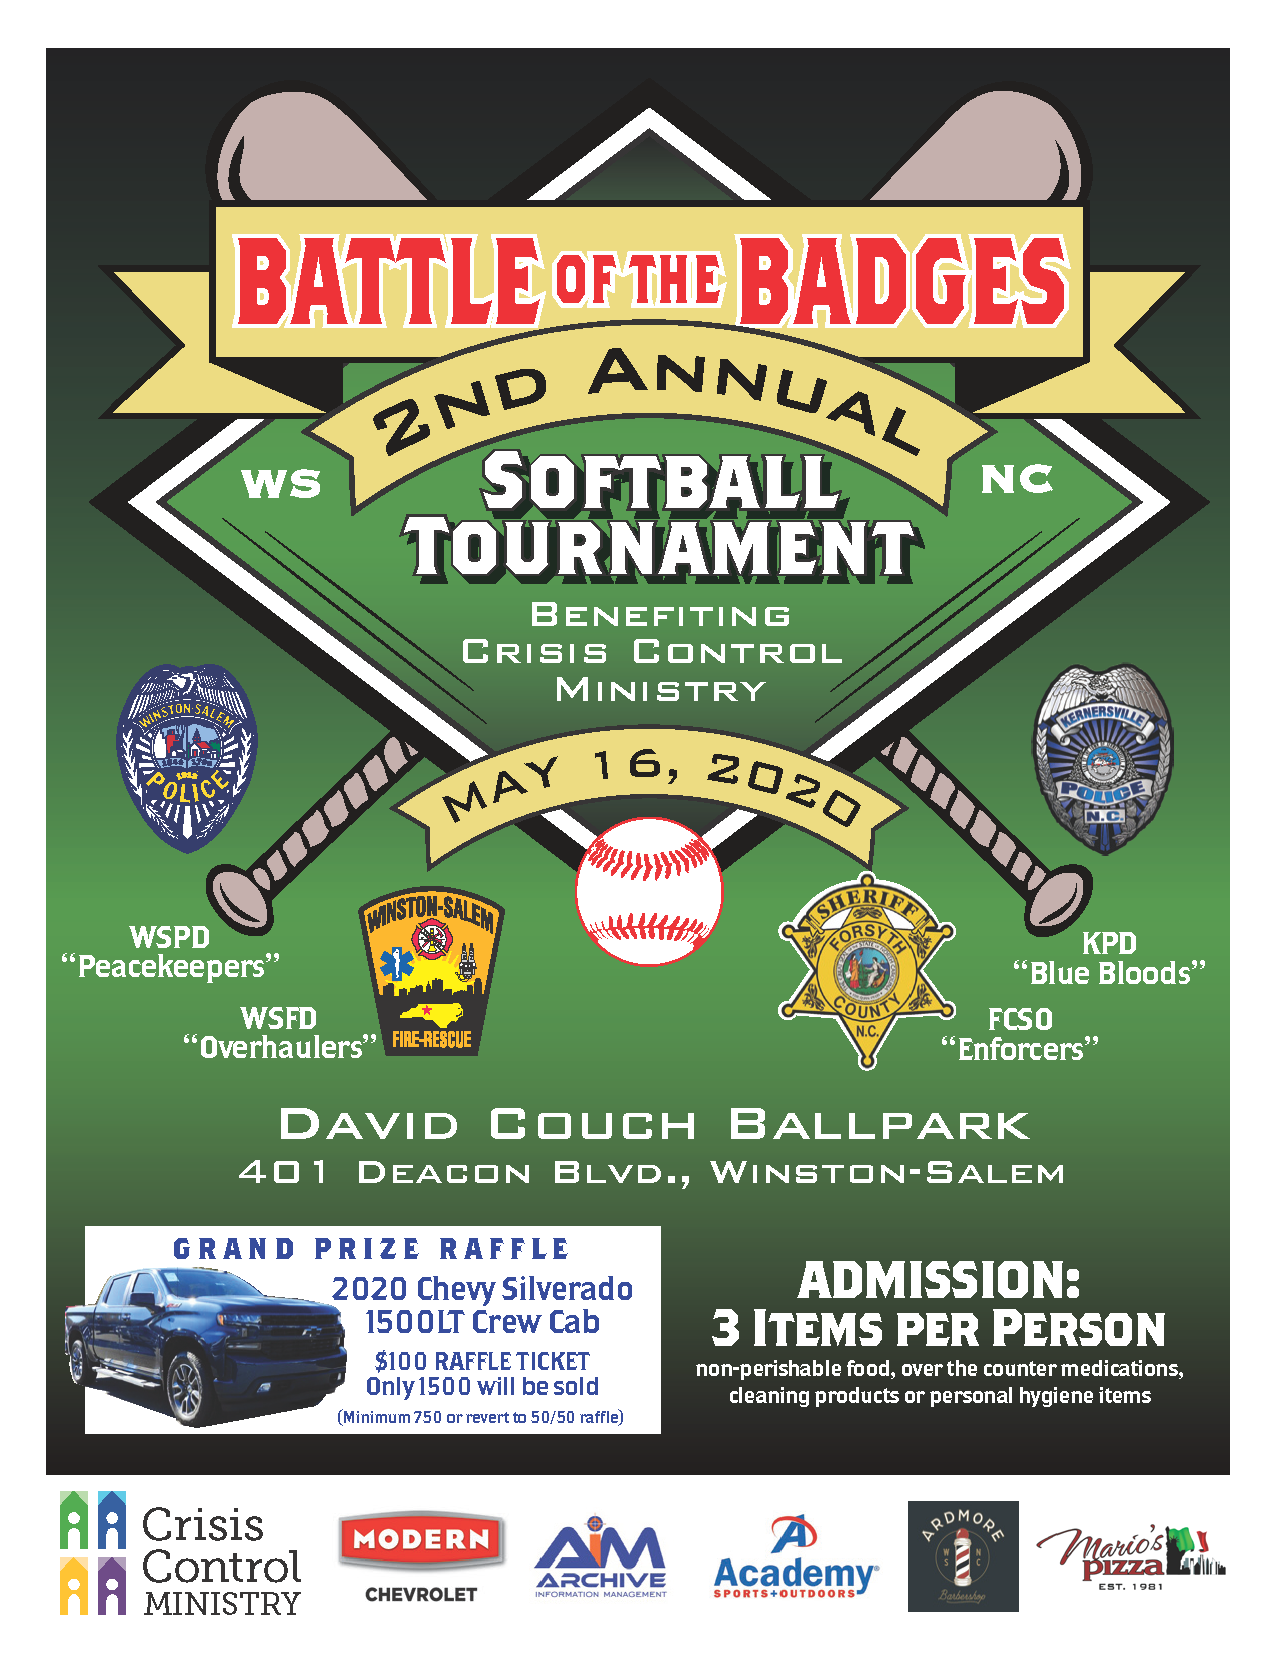 2nd Annual Battle of the Badges